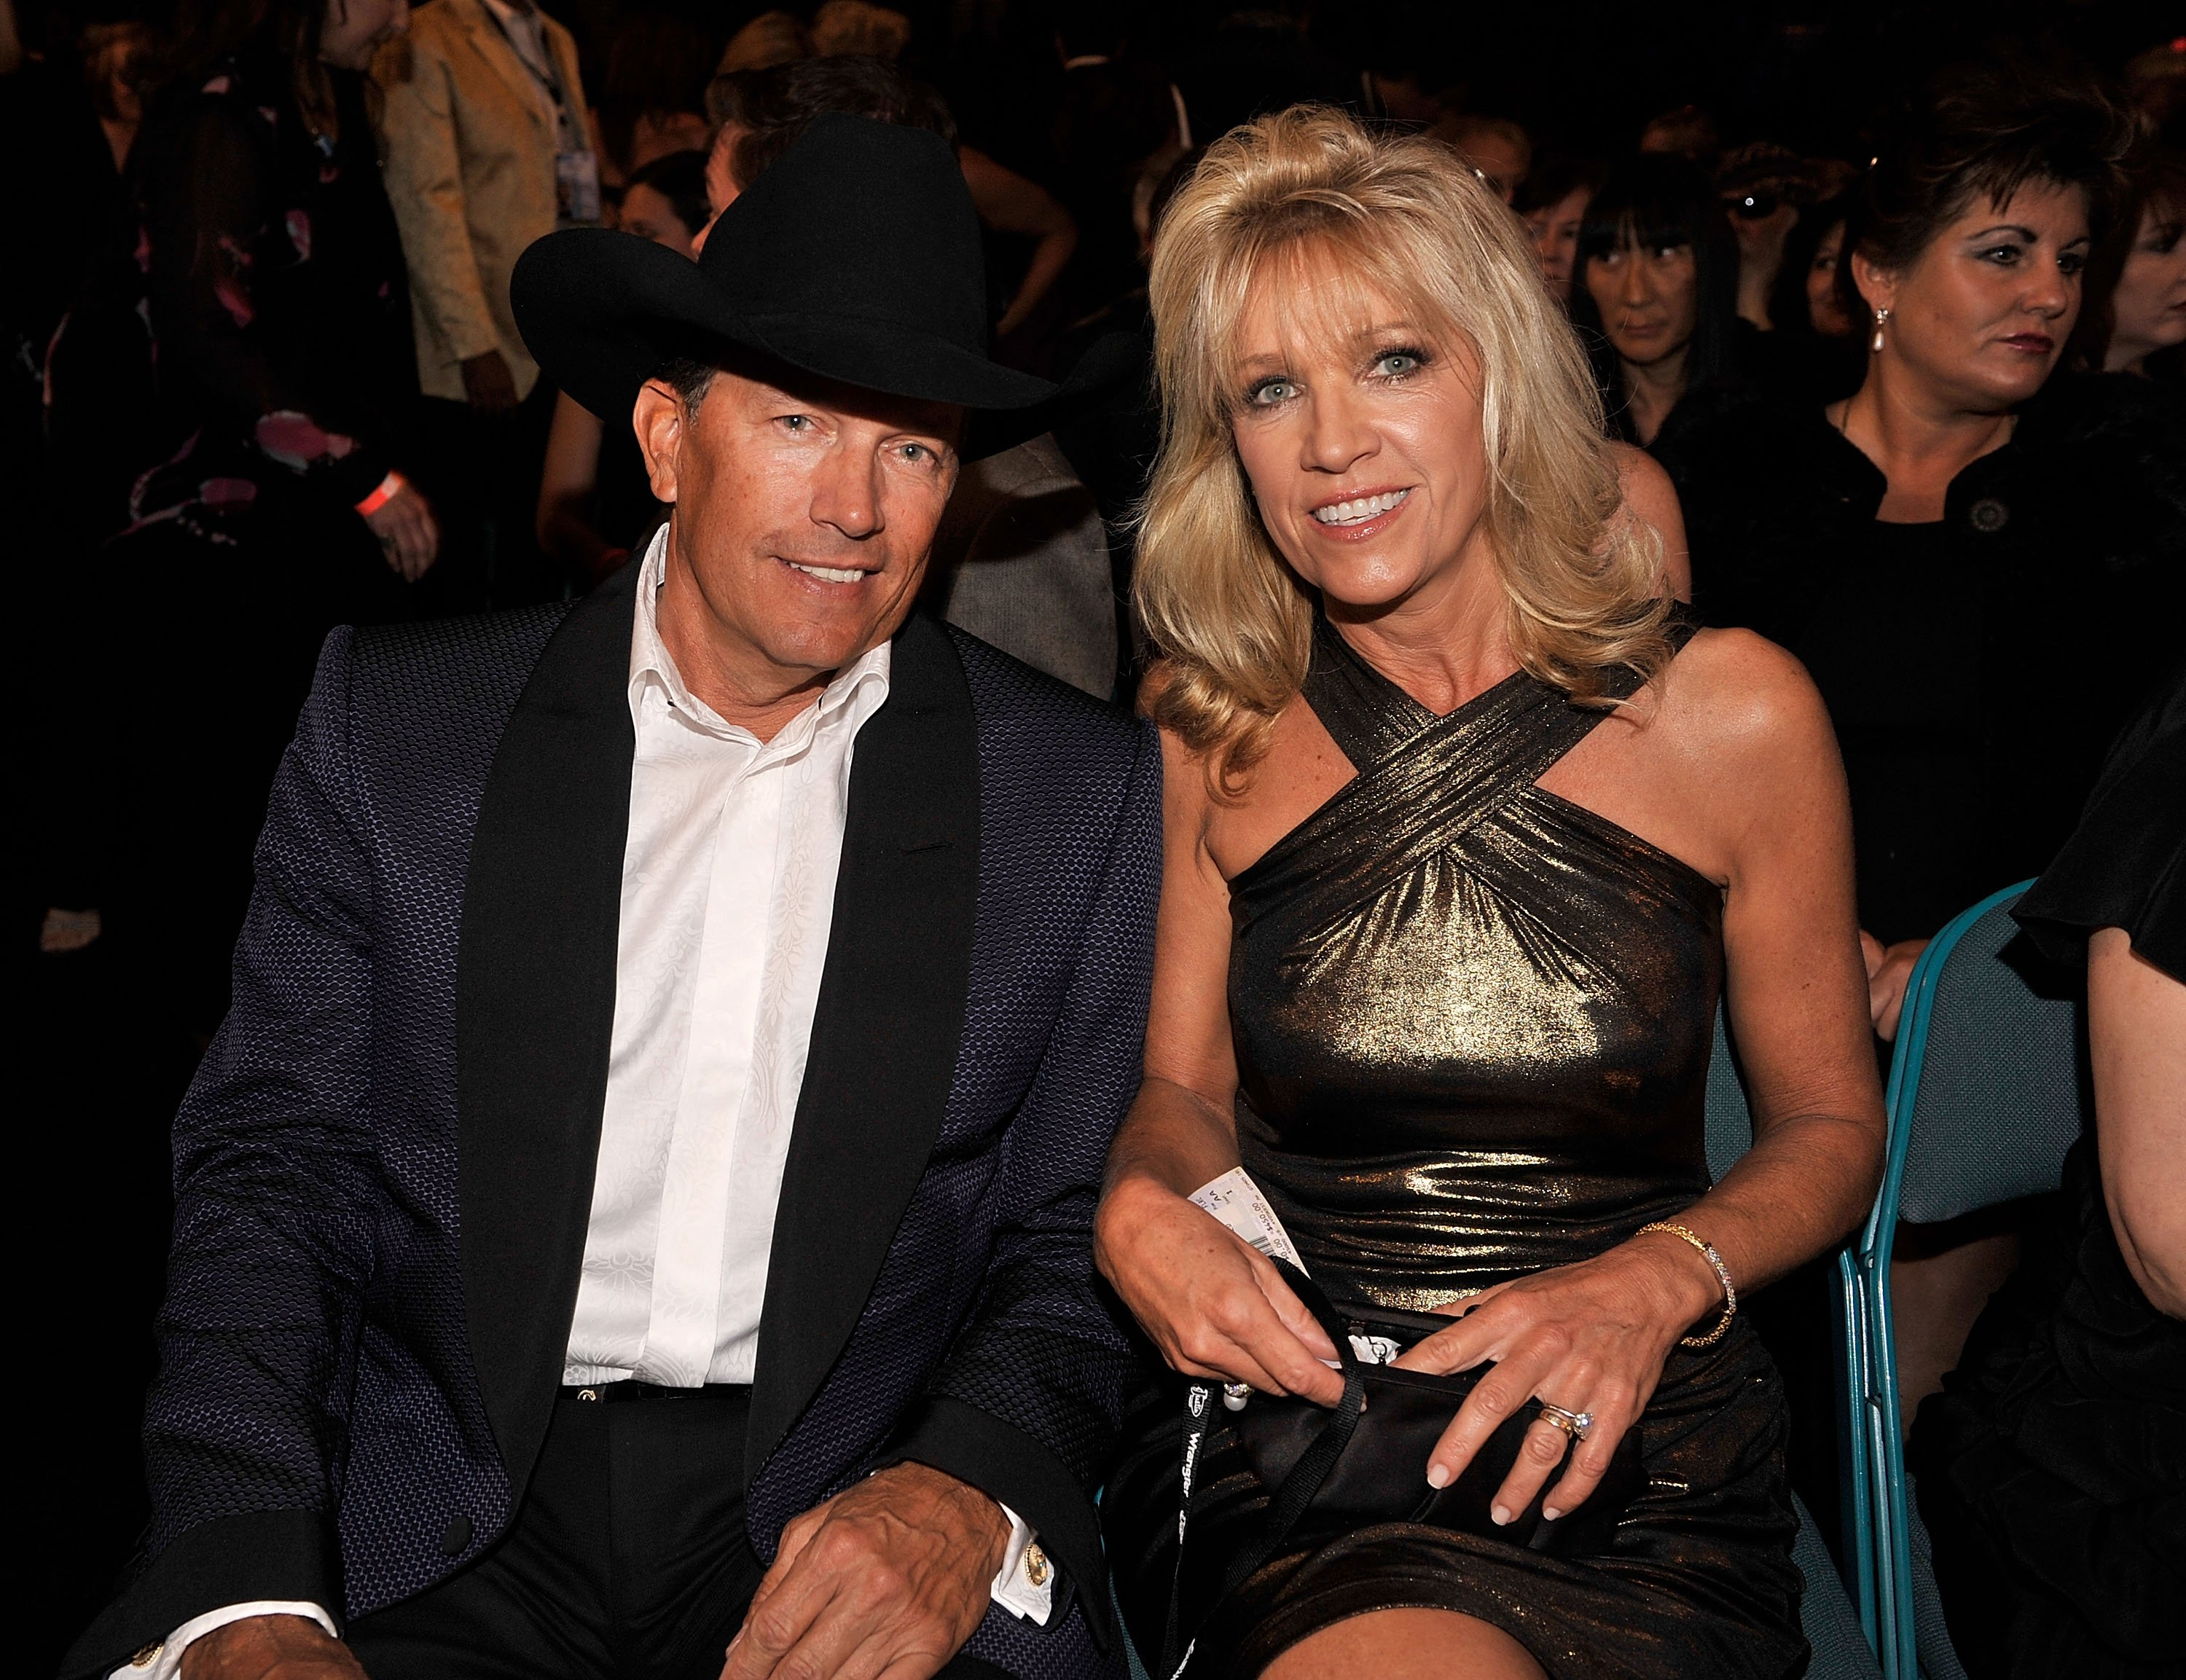 George Strait and wife Norma Strait during the 44th annual Academy Of Country Music Awards held at the MGM Grand. | Source: Getty Images